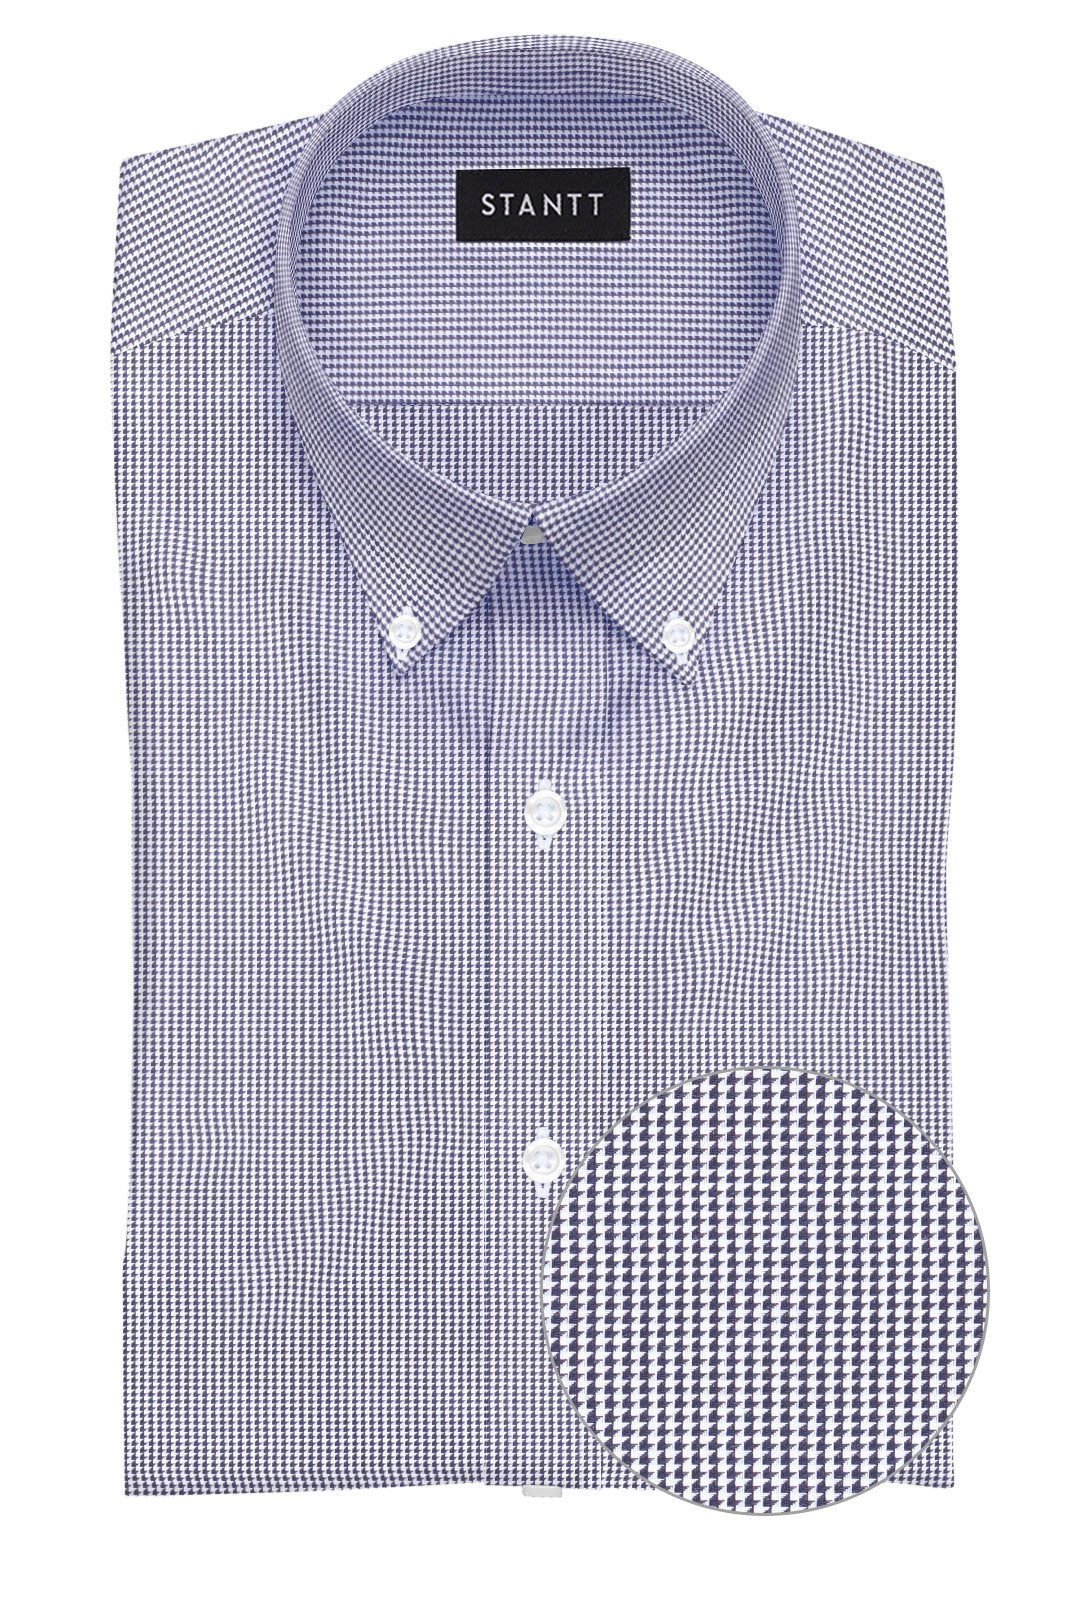 Black Micro Houndstooth: Button-Down Collar, Barrel Cuff